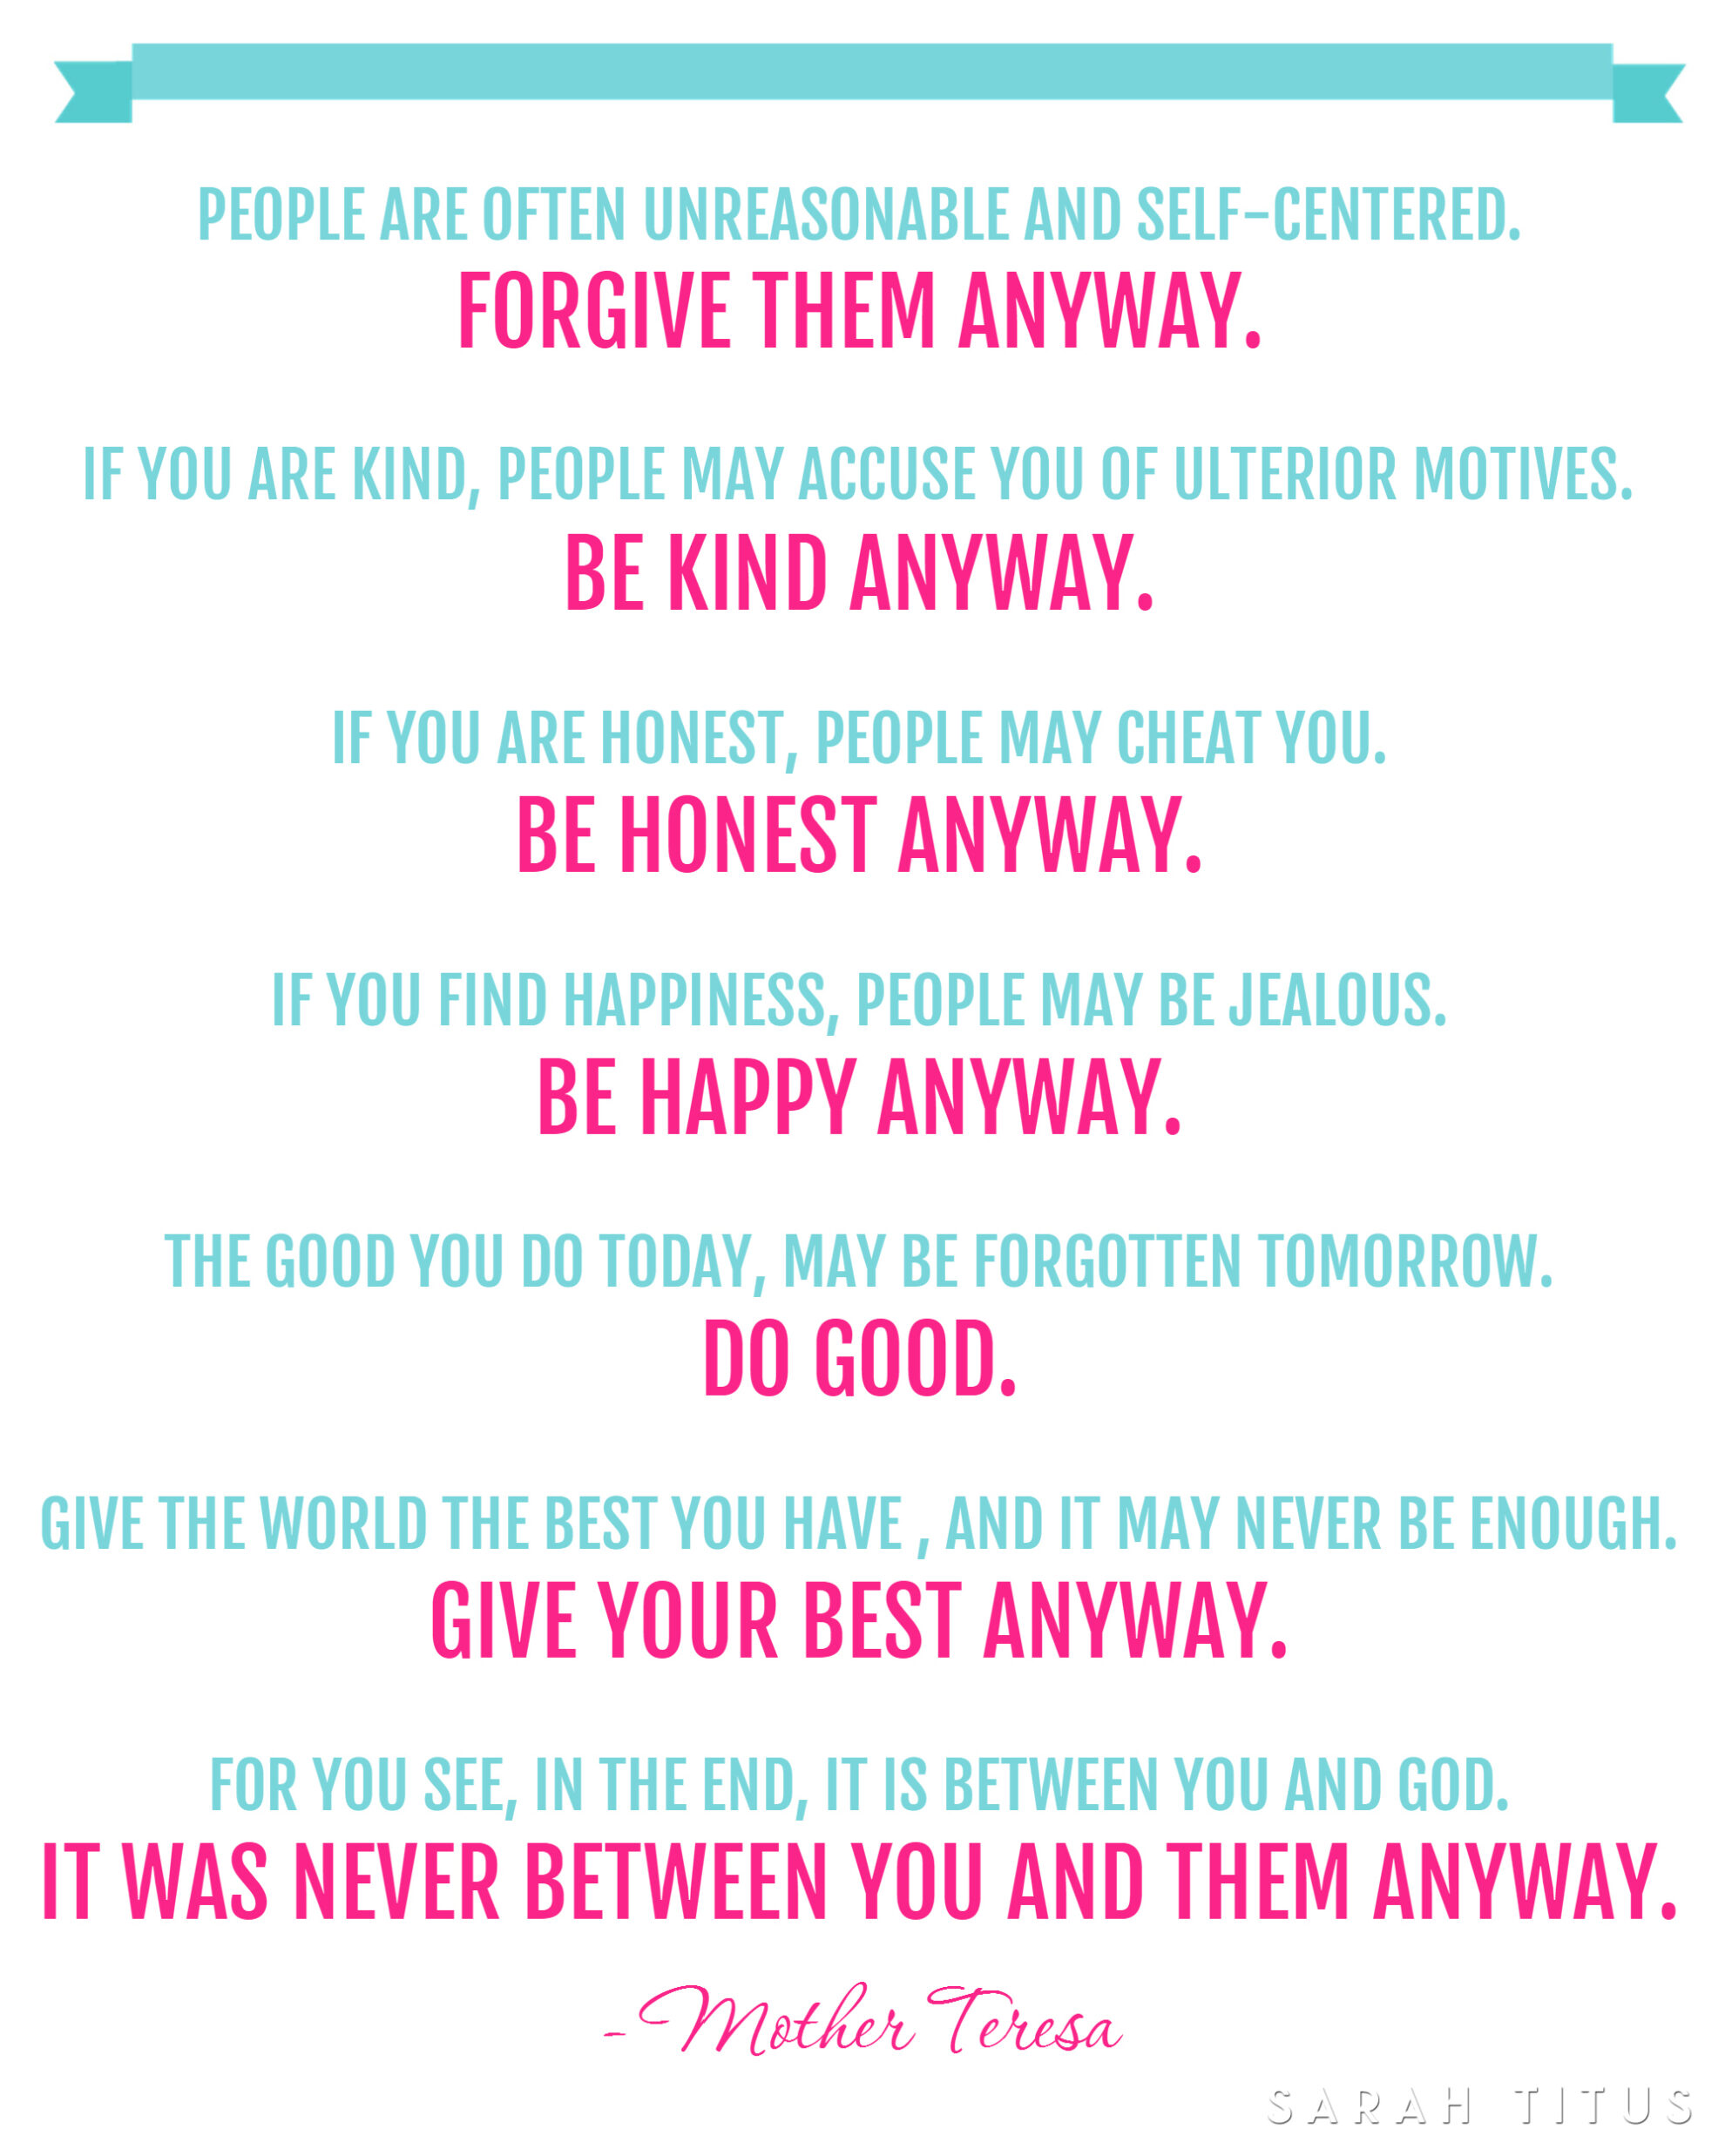 photo regarding Mother Teresa Do It Anyway Printable titled Free of charge Mom Teresa Estimate Printable - Sarah Titus